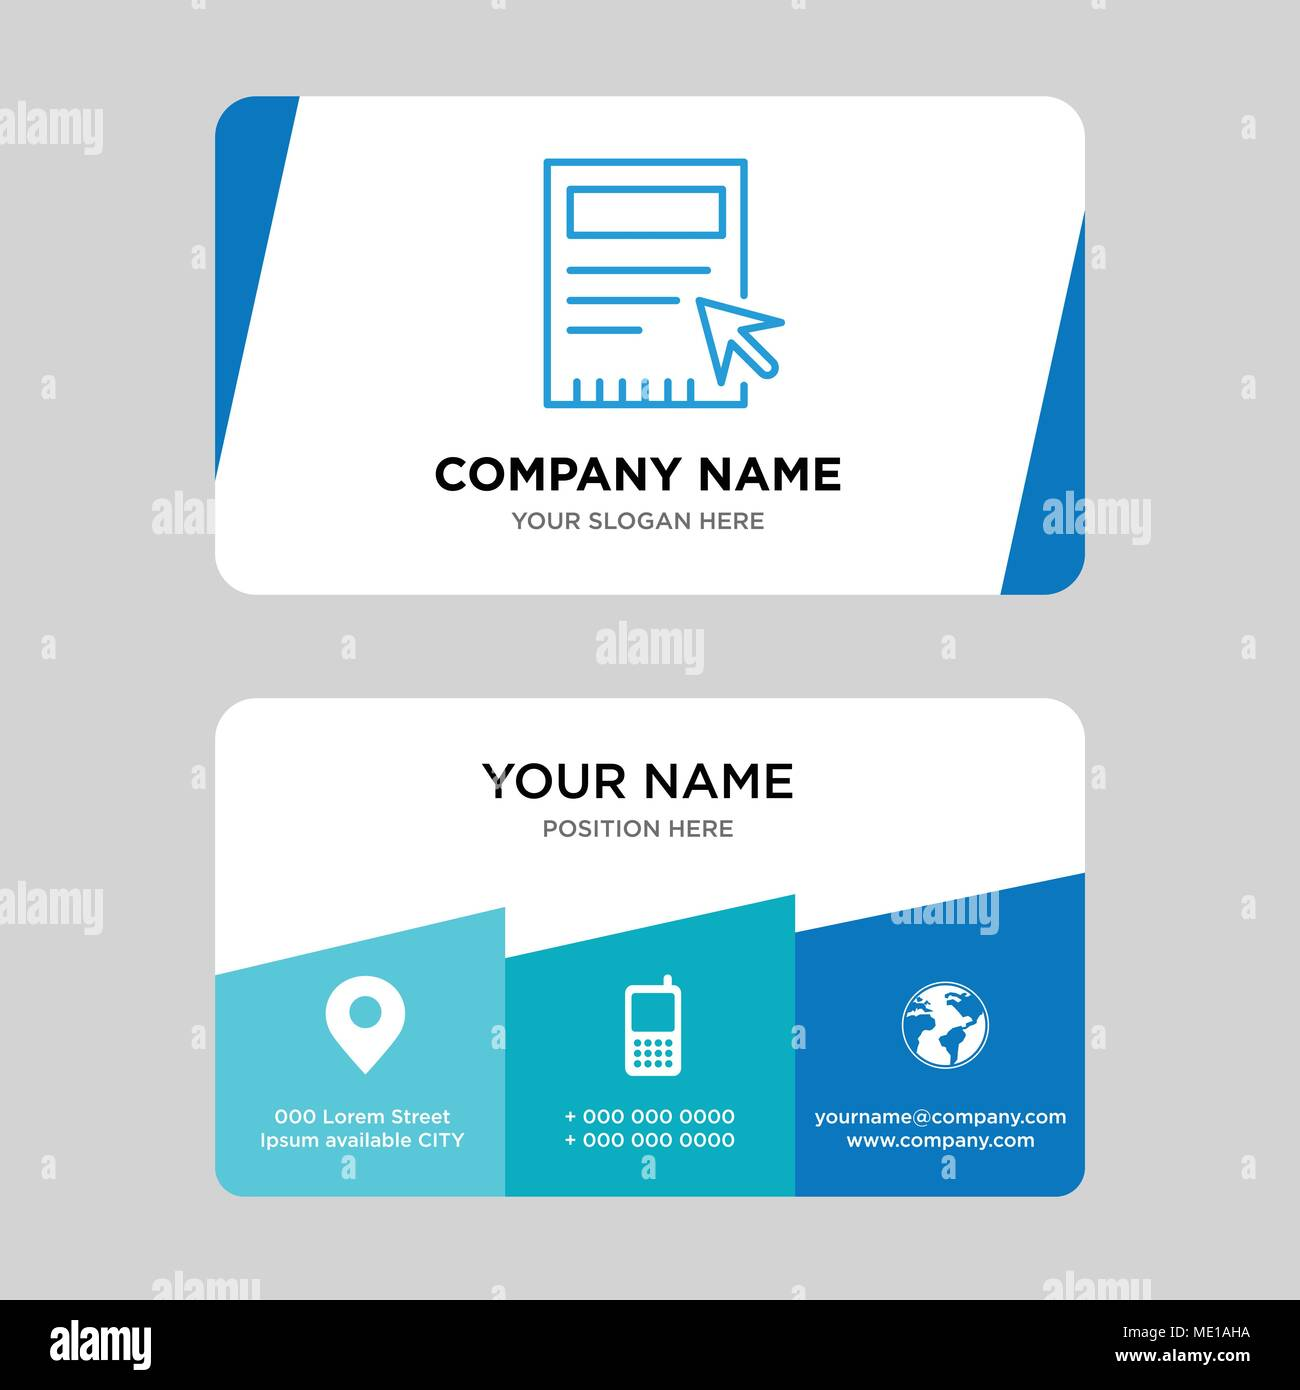 Blank business card design template, Visiting for your